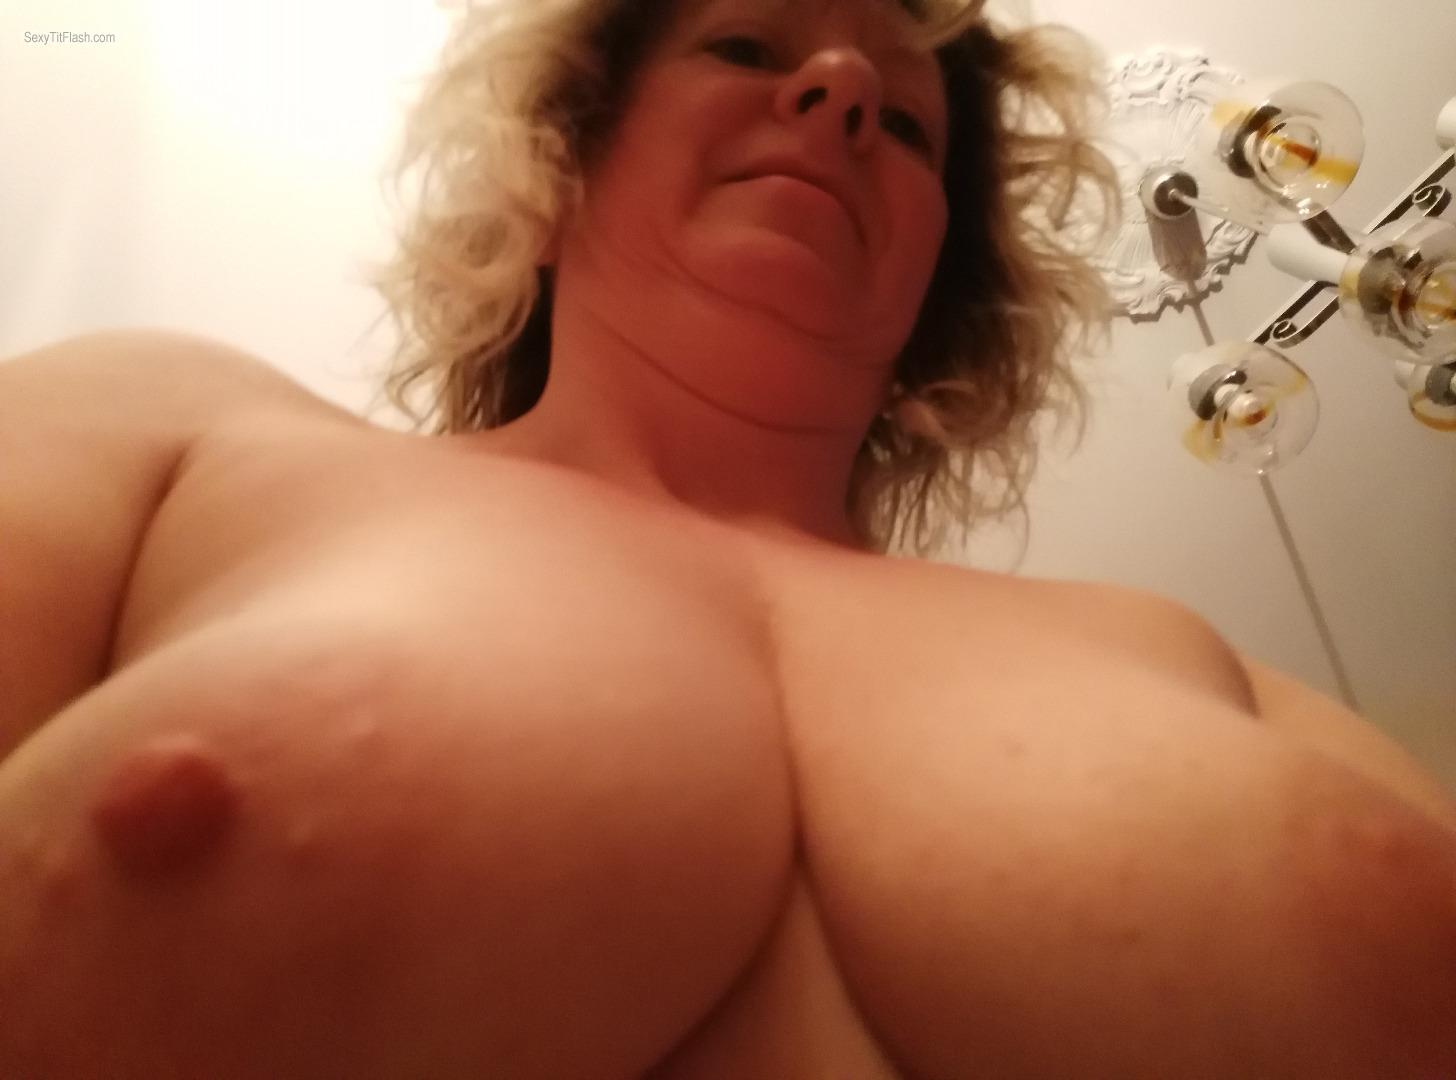 Tit Flash: My Small Tits - Topless Elisa from United Kingdom